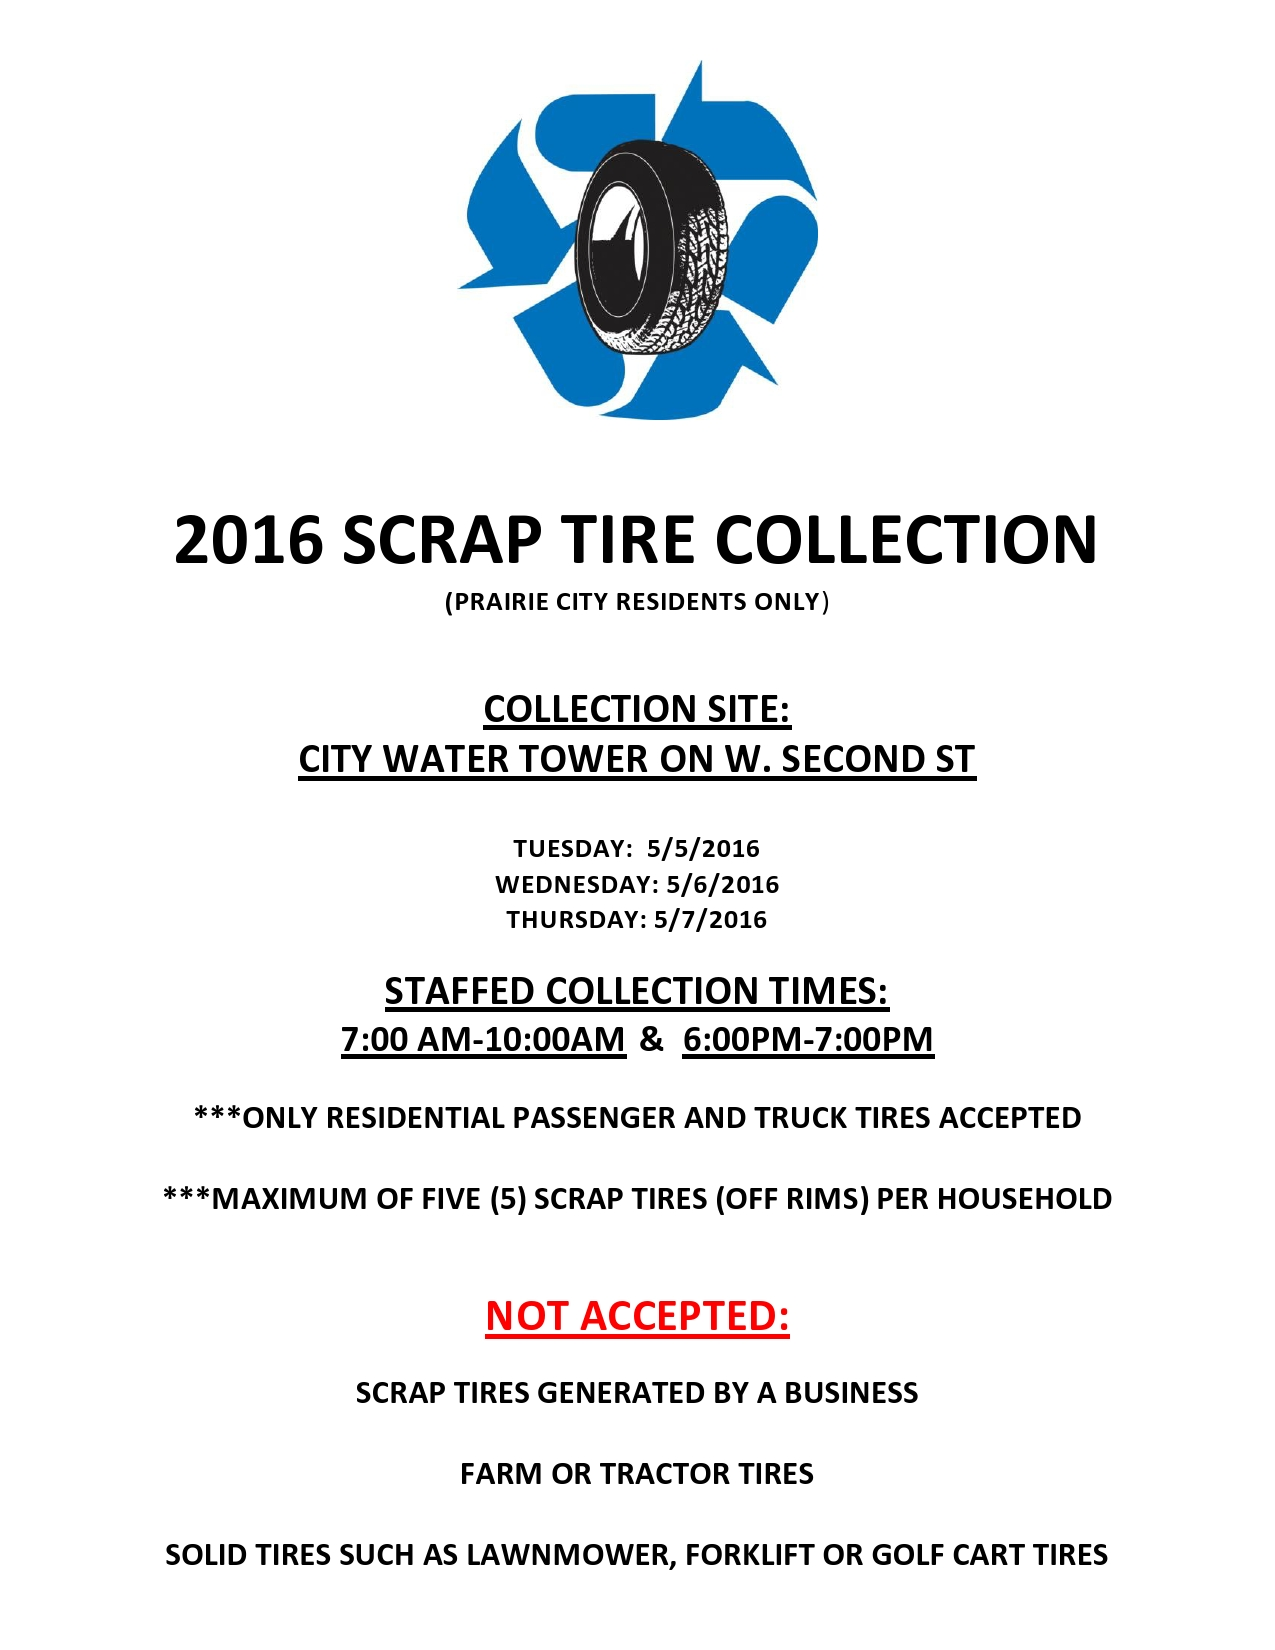 Scrap Tire Collection